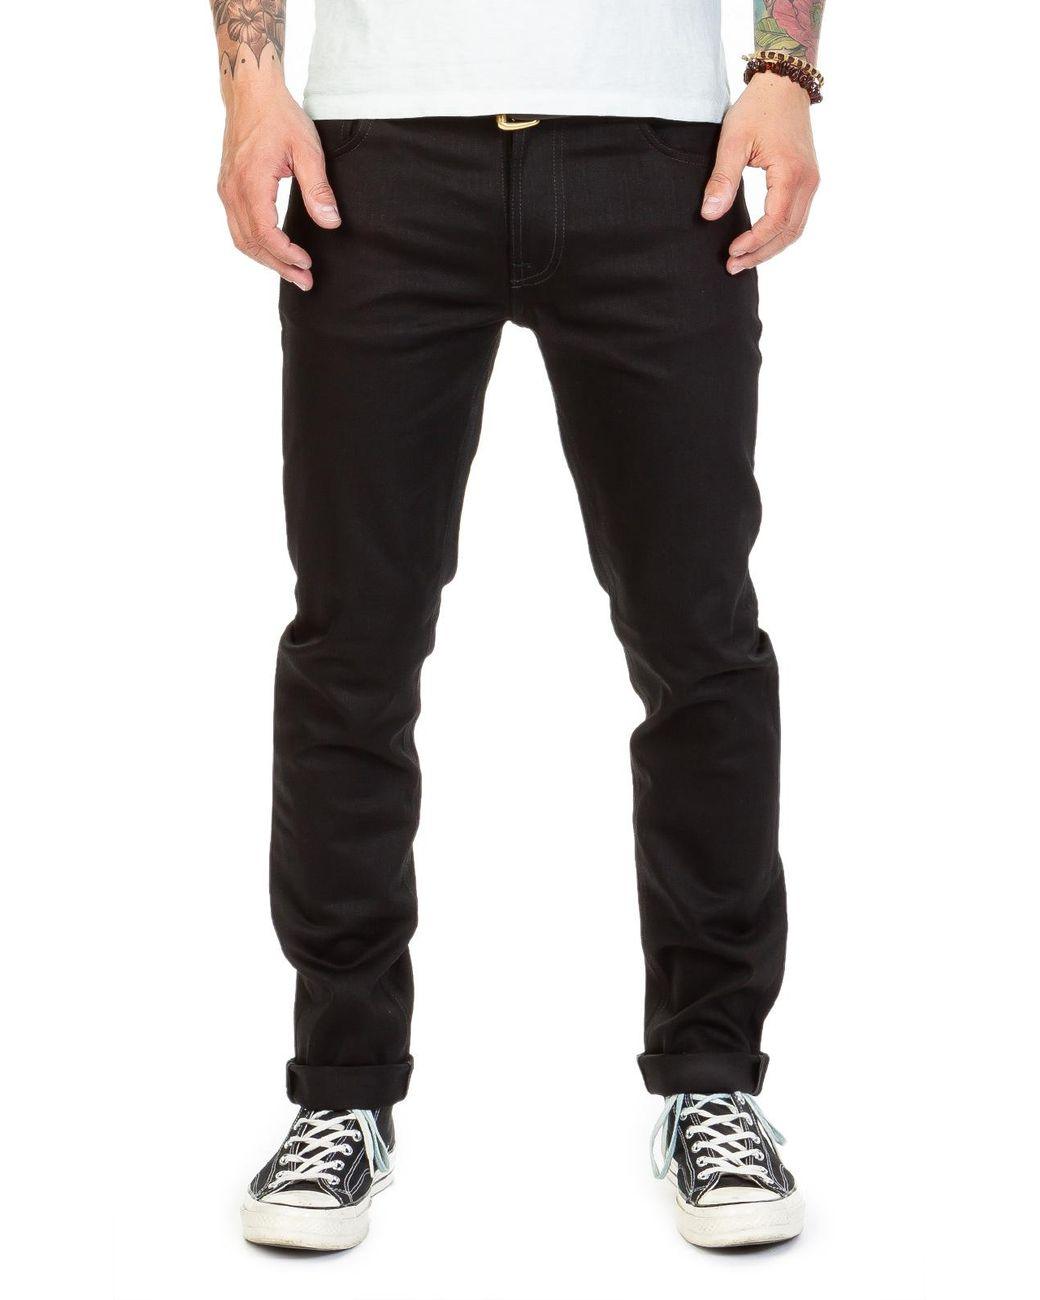 949f29ca Nudie Jeans Thin Finn Dry Cold Black 11.75oz in Black for Men - Lyst